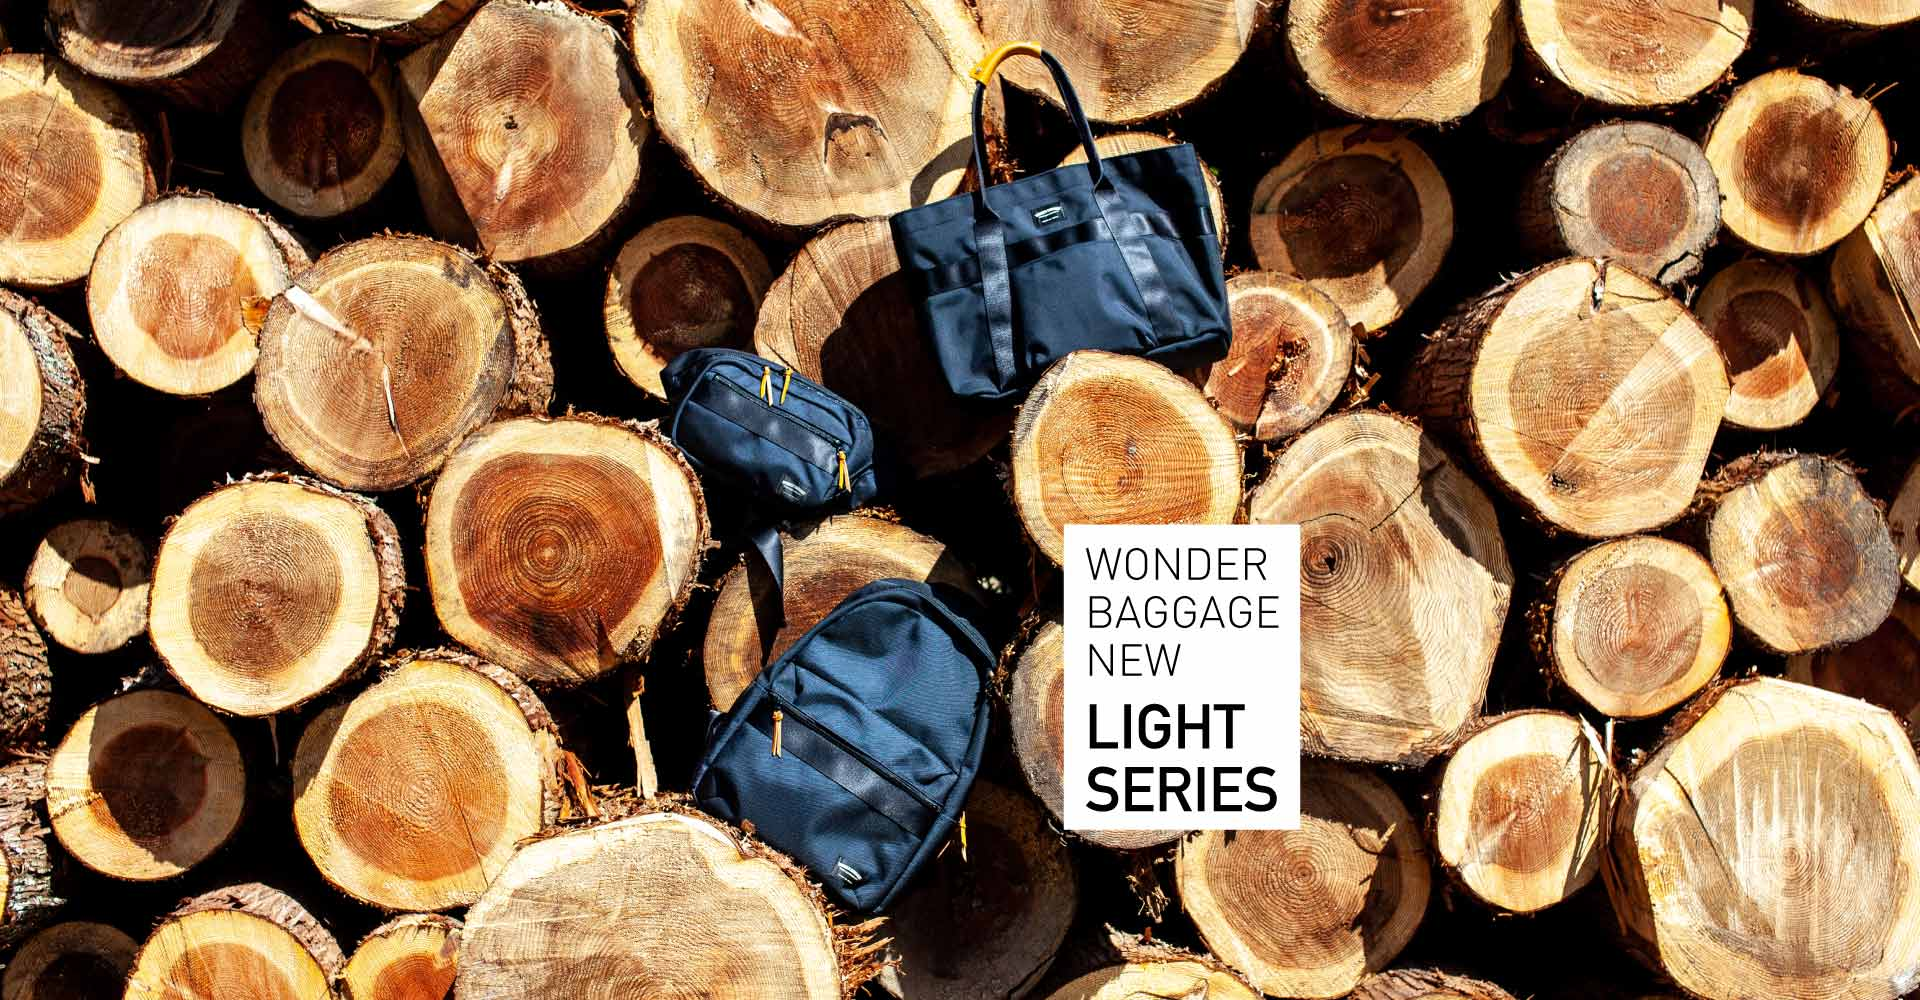 WONDERBAGGAGE NEW LIGHT SERIES